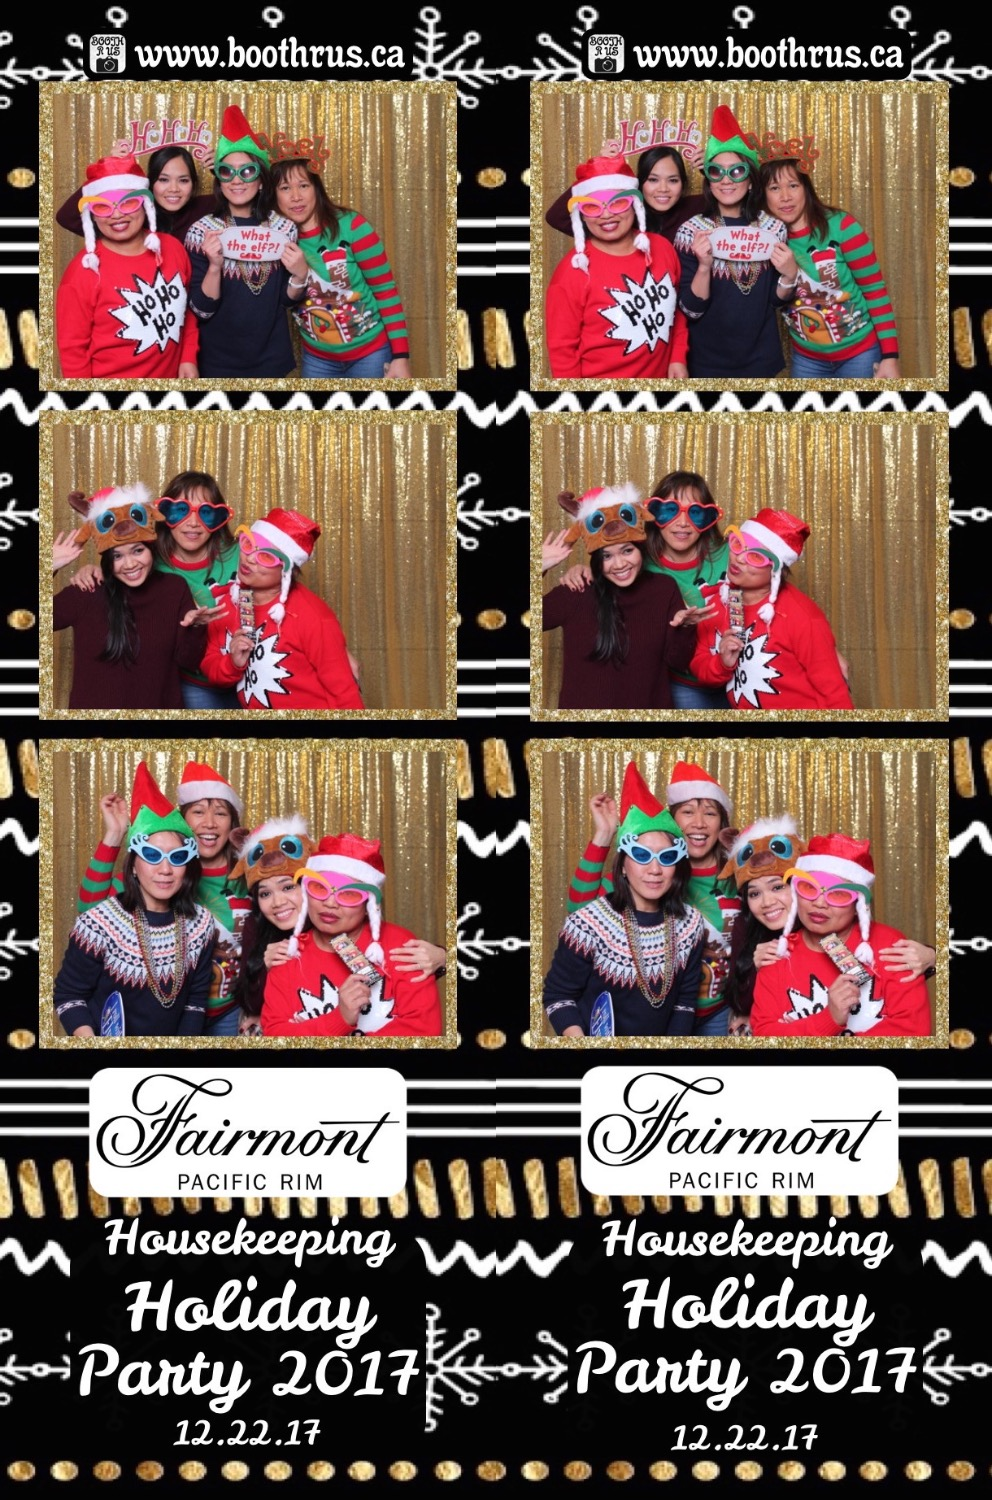 Fairmont Holiday Party